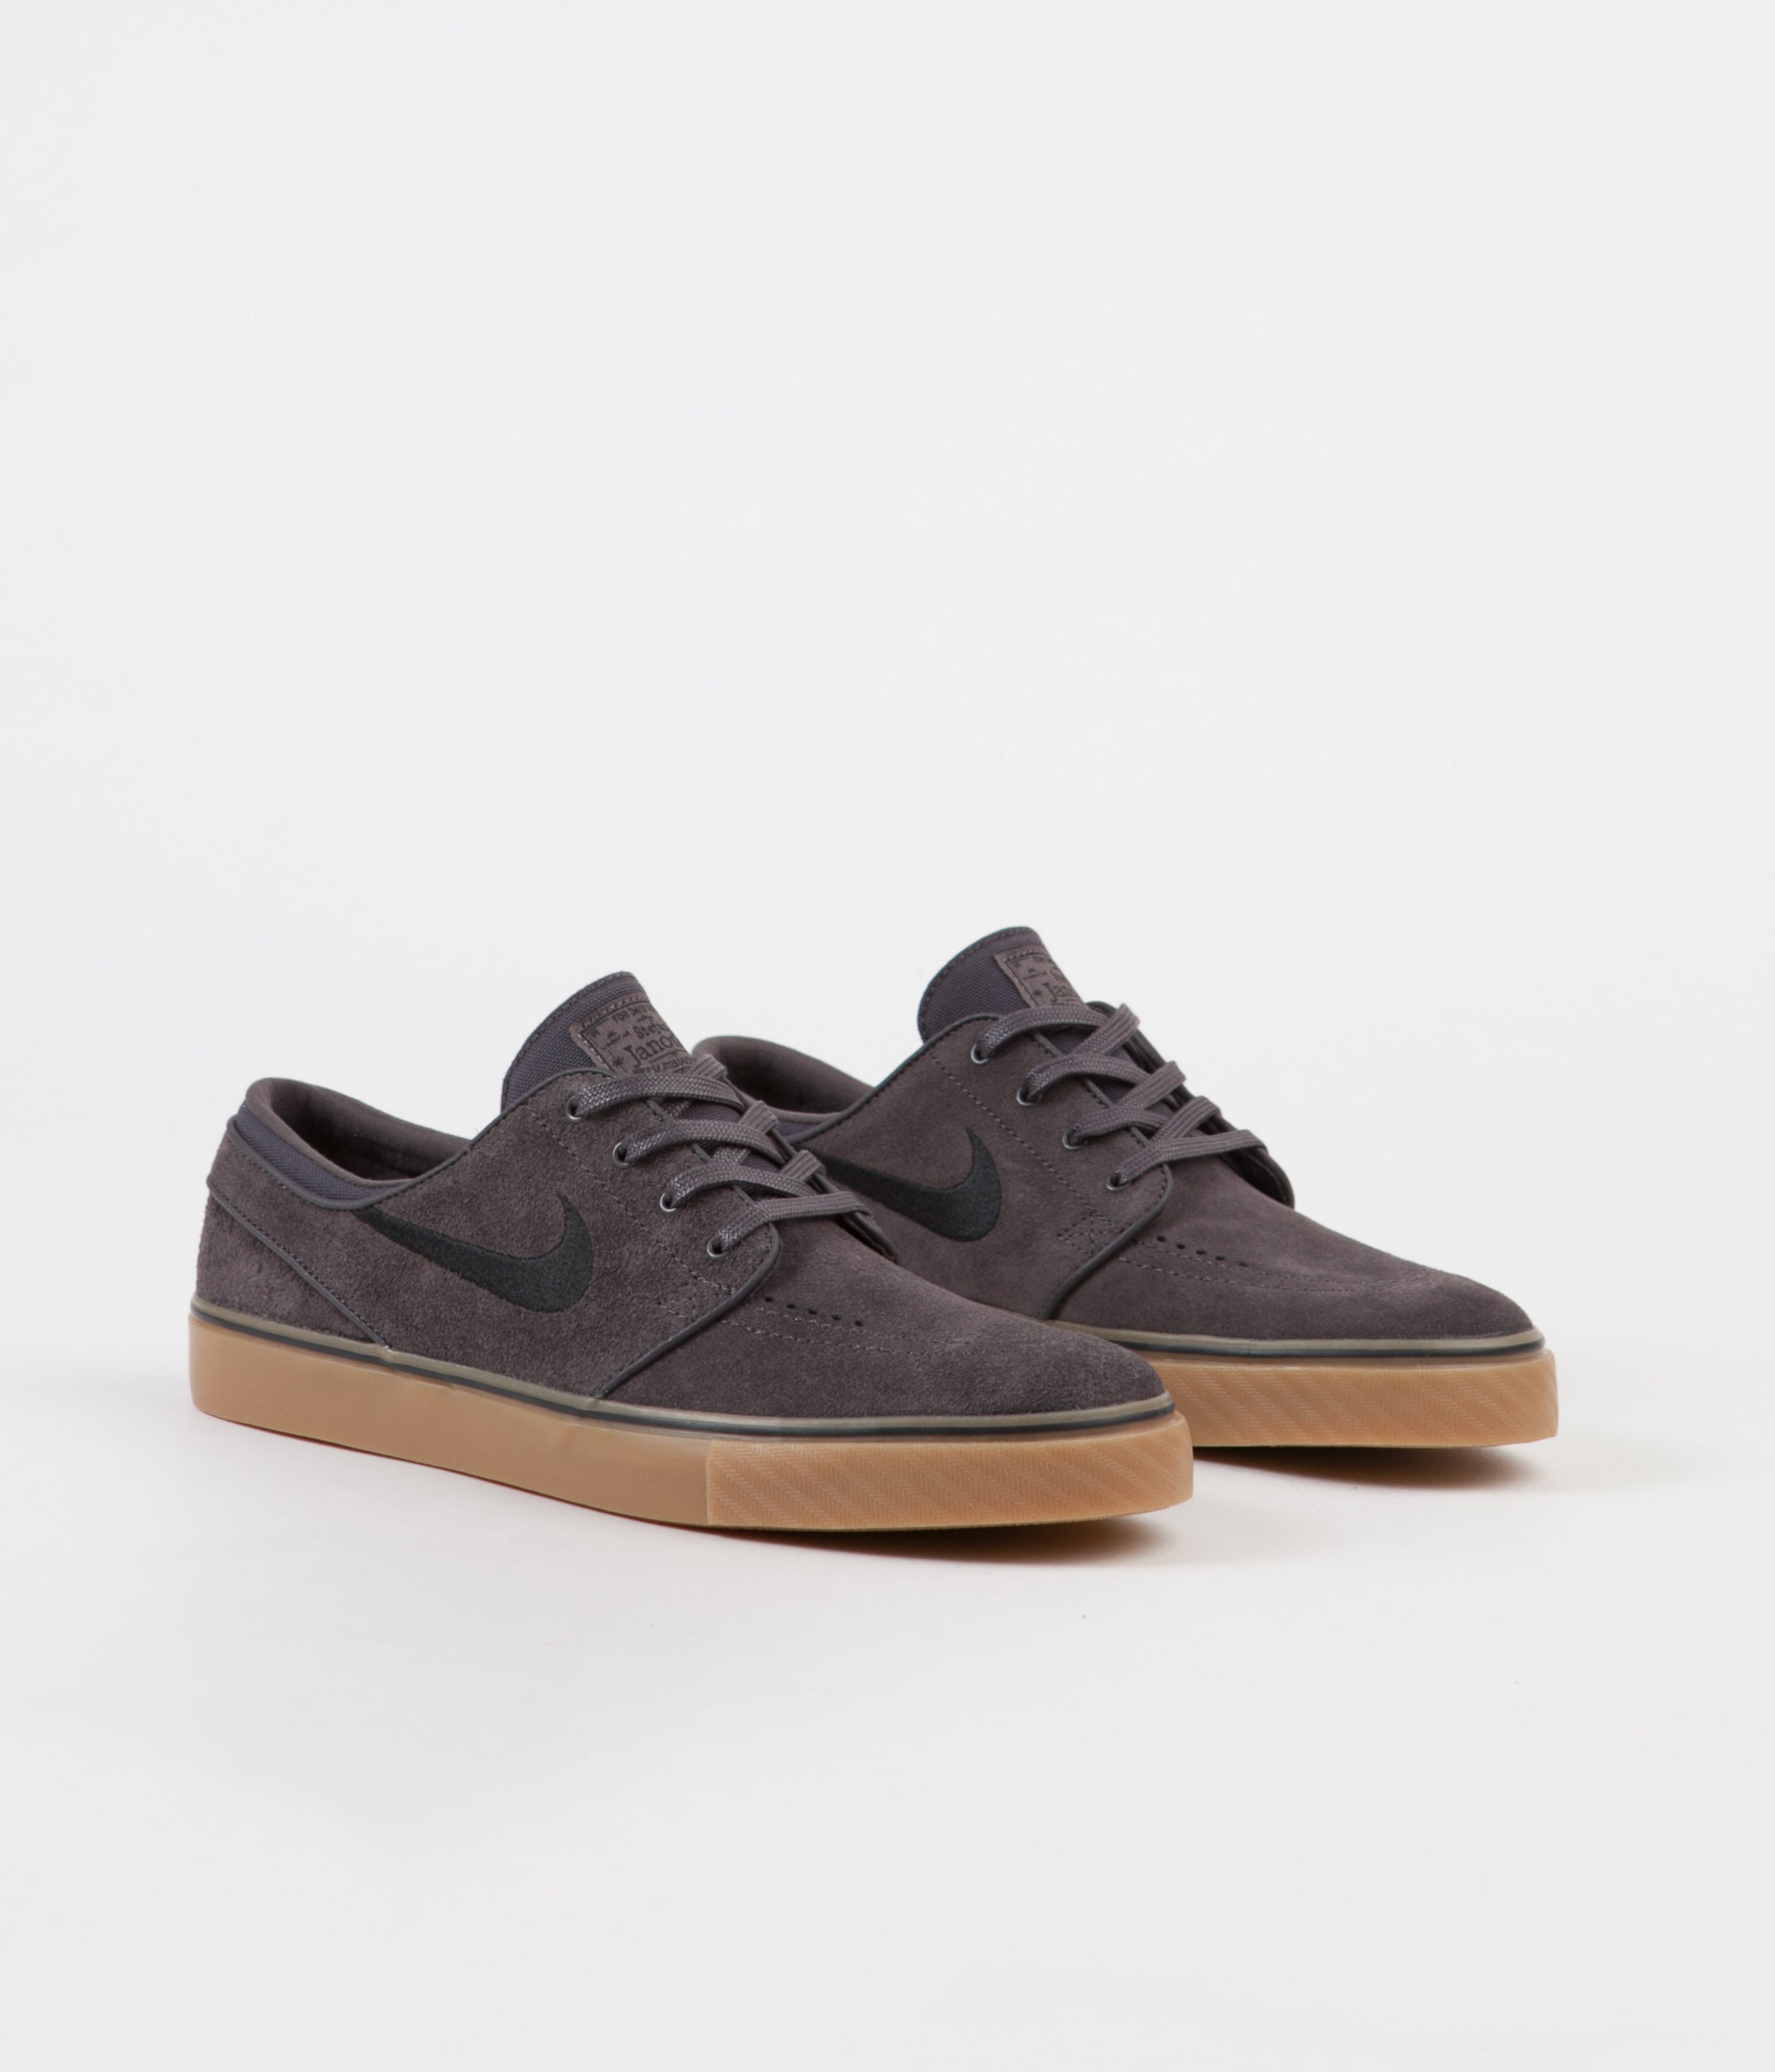 Restricciones salón cáscara  Nike SB Stefan Janoski Shoes - Thunder Grey / Black - Gum Light Brown |  Flatspot